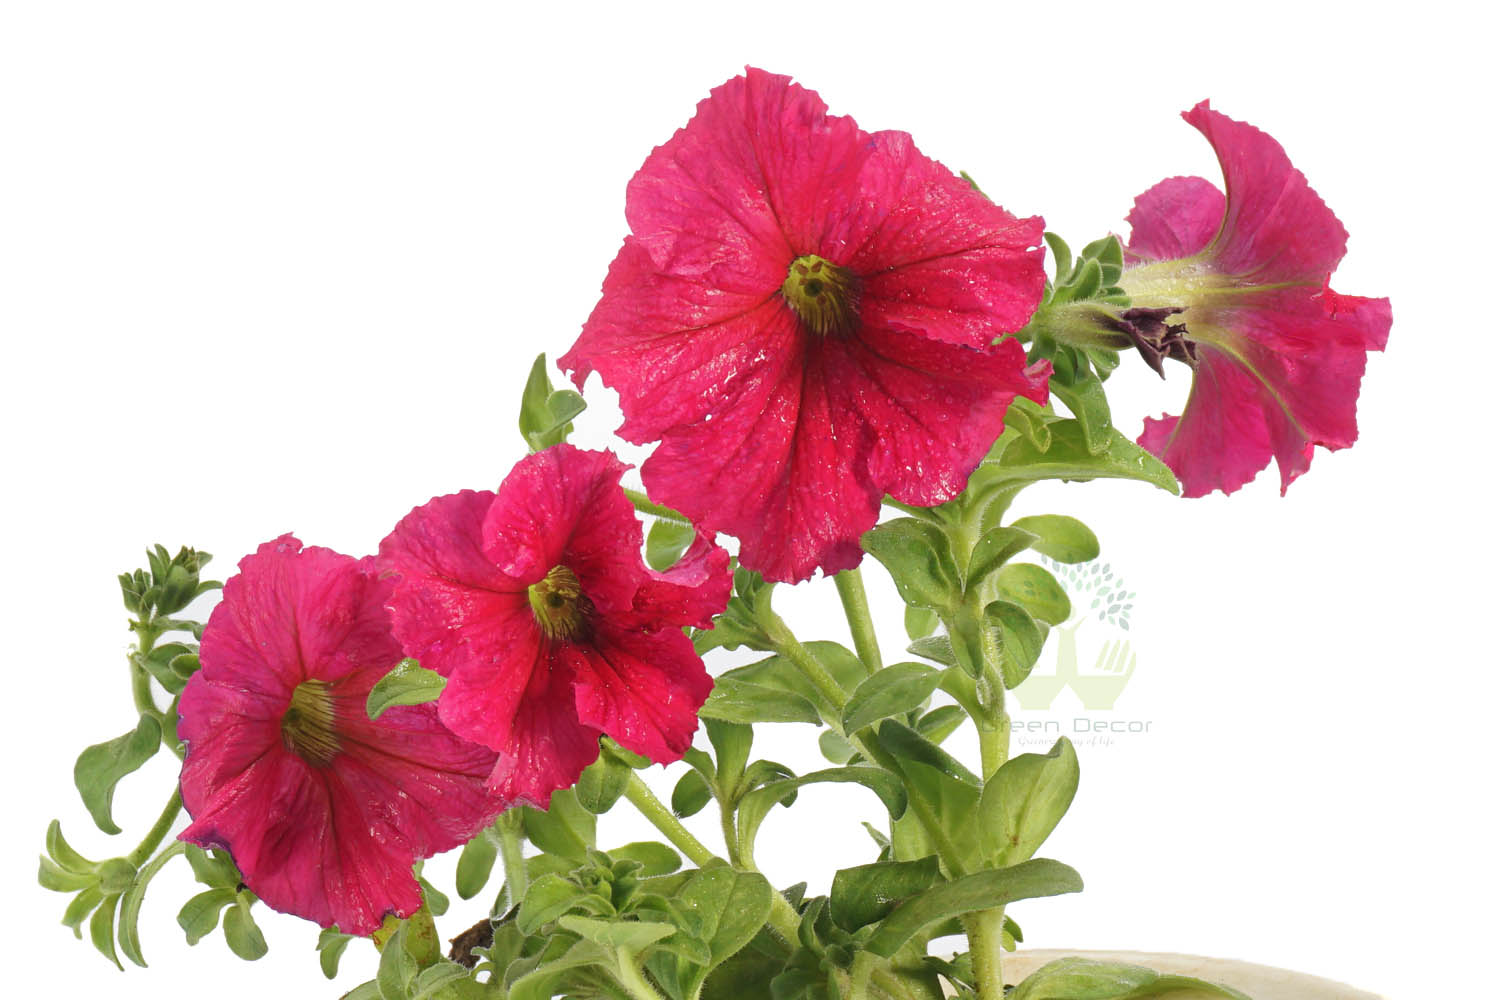 Buy Petunia  Pink Plants , White Pots and seeds in Delhi NCR by the best online nursery shop Greendecor.